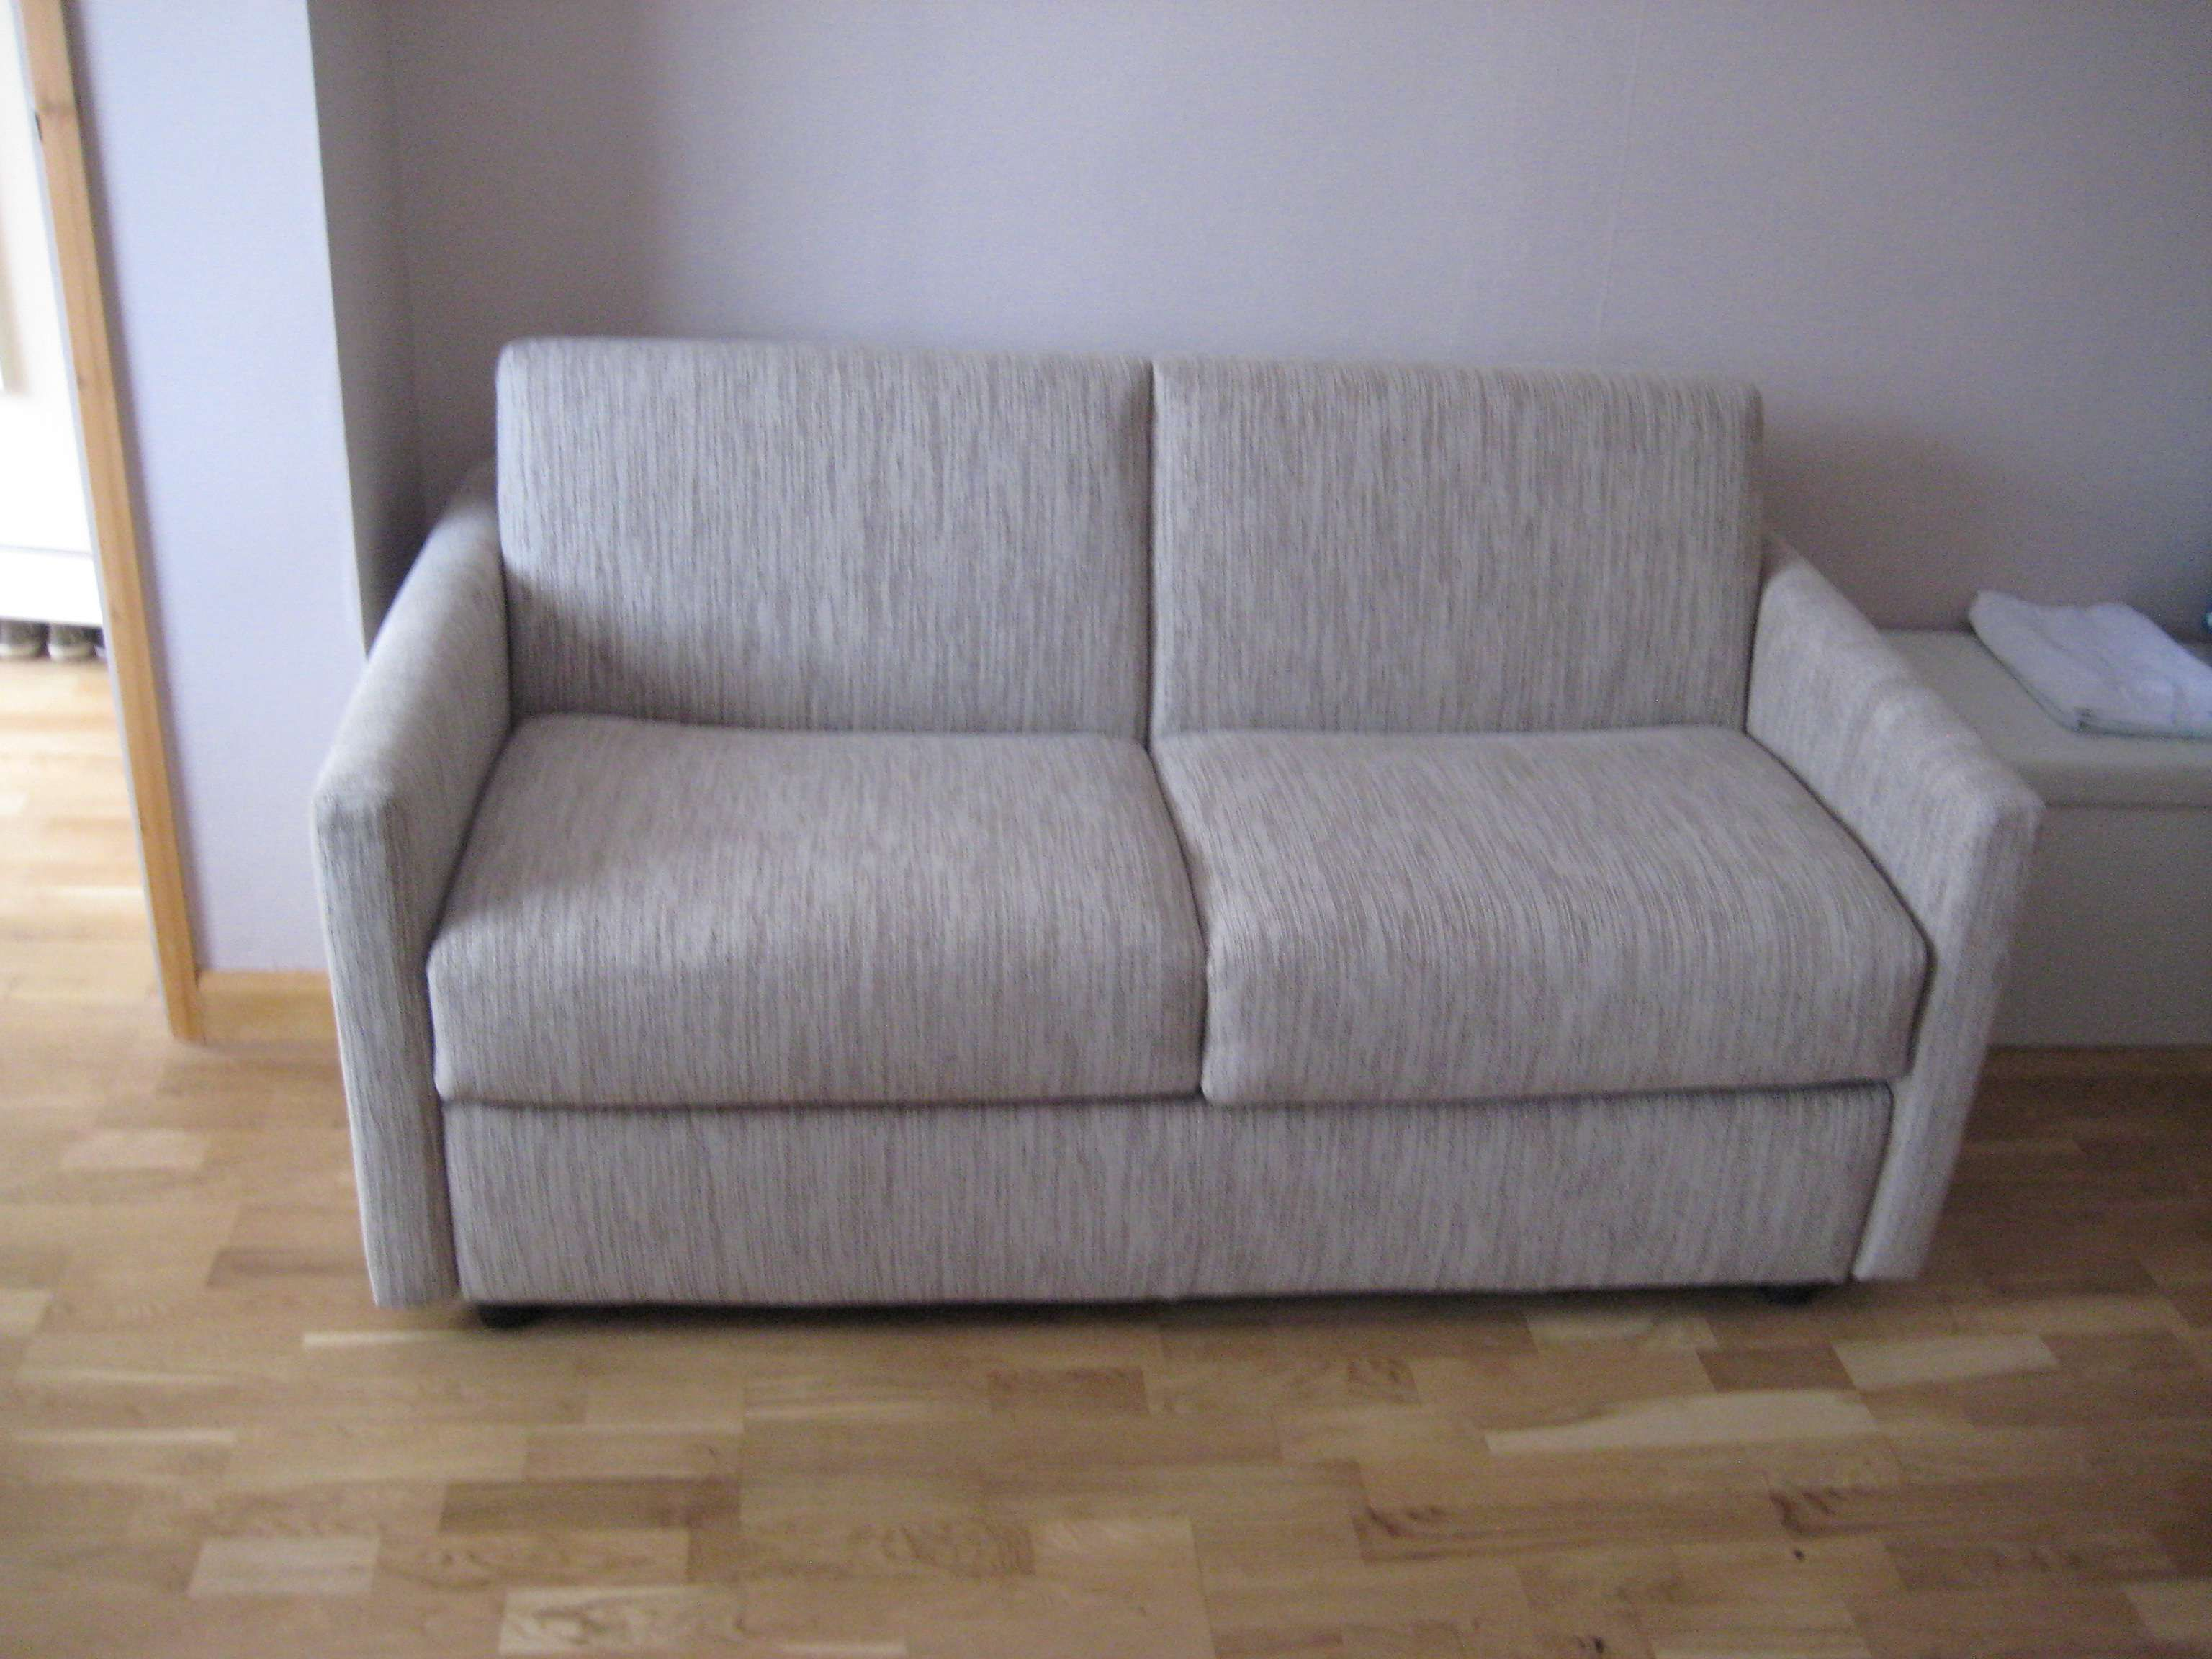 This Lario Sofa Bed 2 Seater Slim 8 Cm Arms Measures A Pact 155